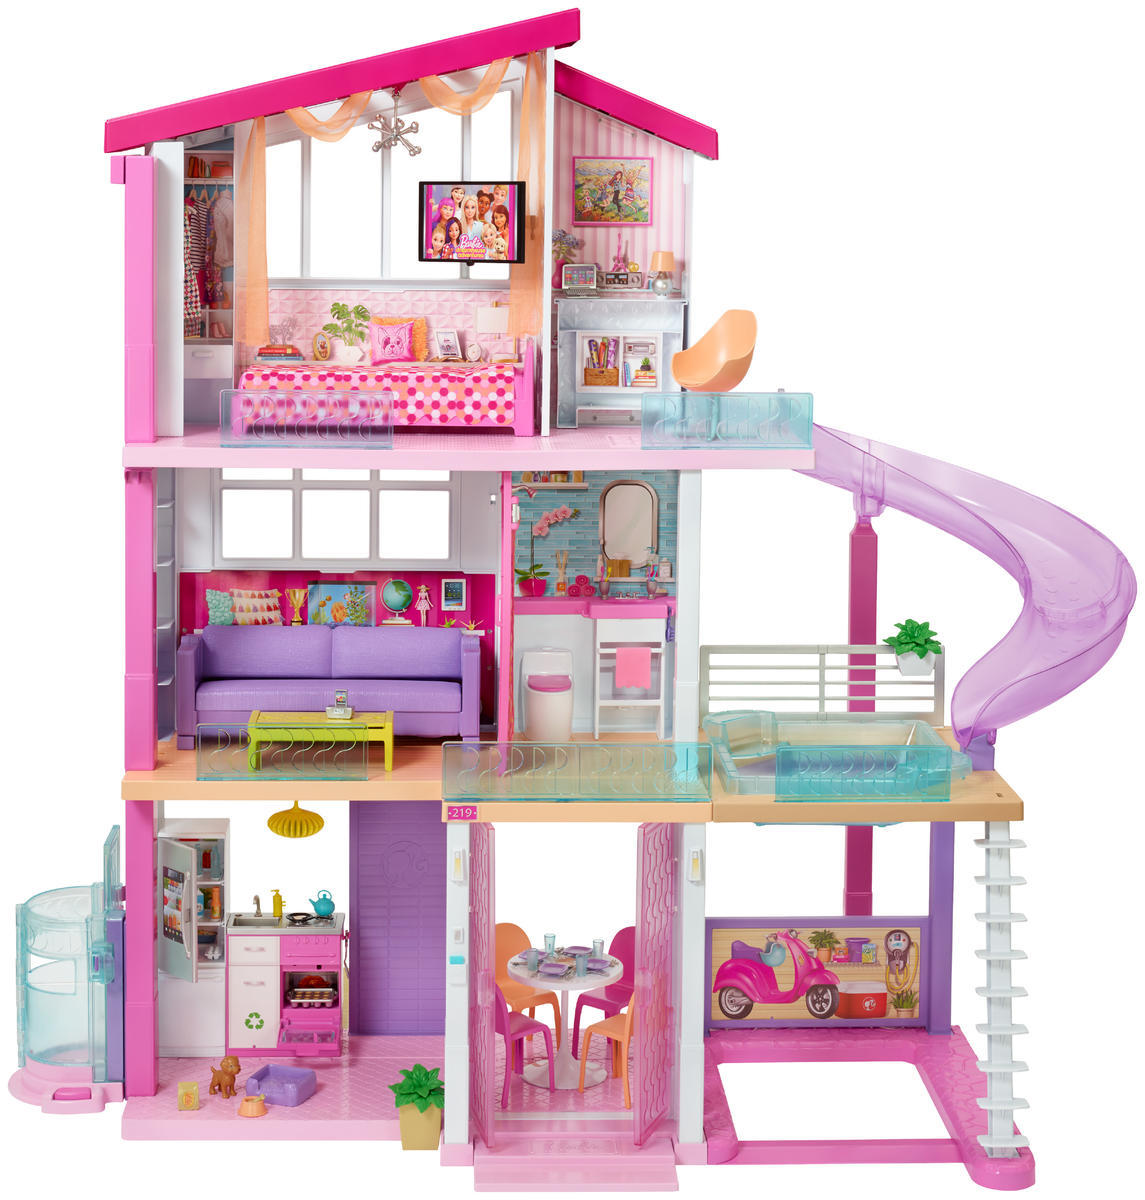 Barbie House Design The 2018 Barbie Dreamhouse Would Be A Million Dollar